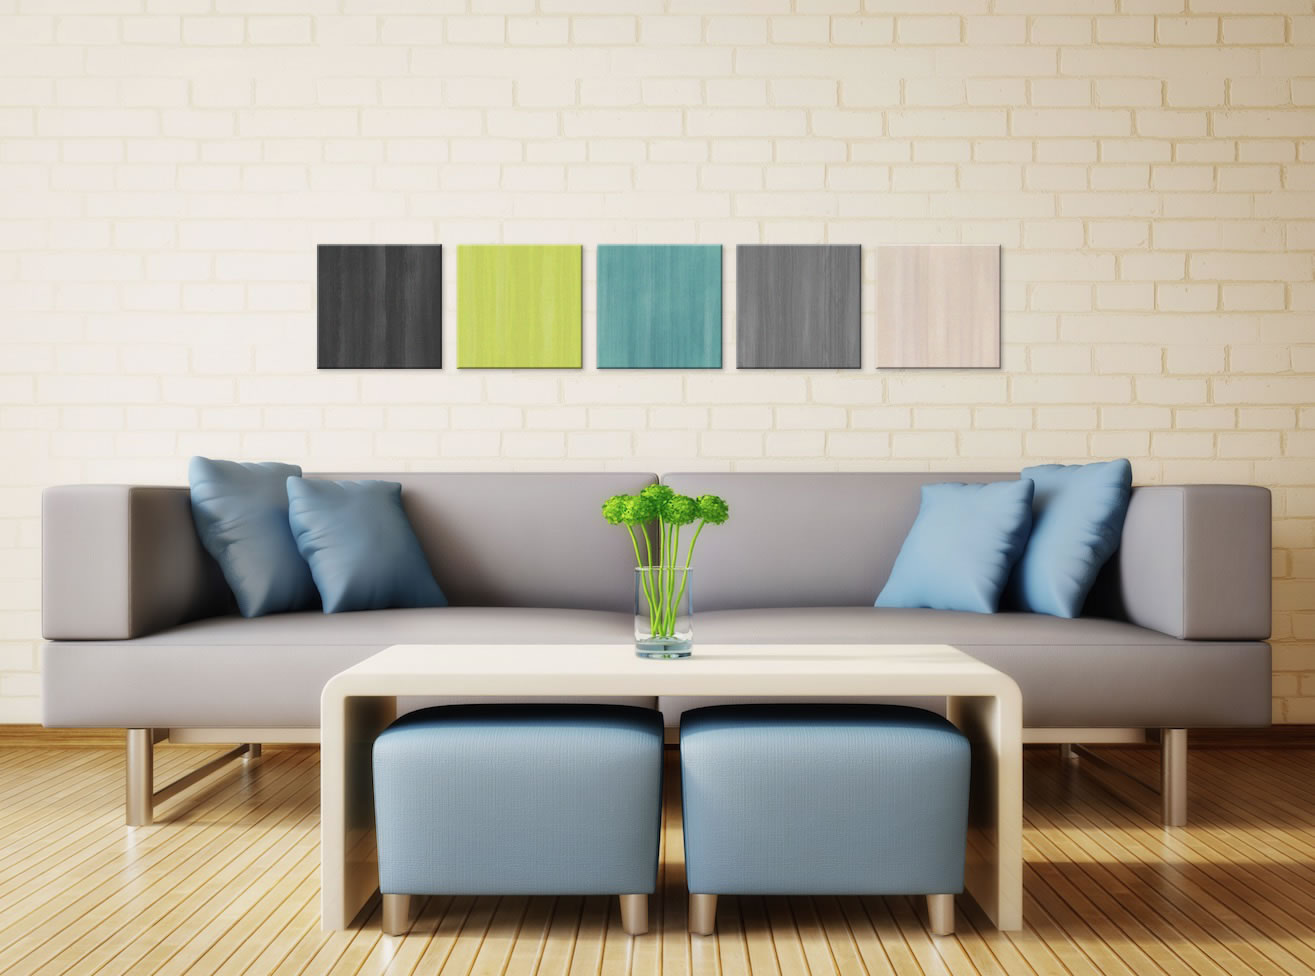 Natural Balance - Colorful Contemporary Accents by Elana Reiter - Lifestyle Image